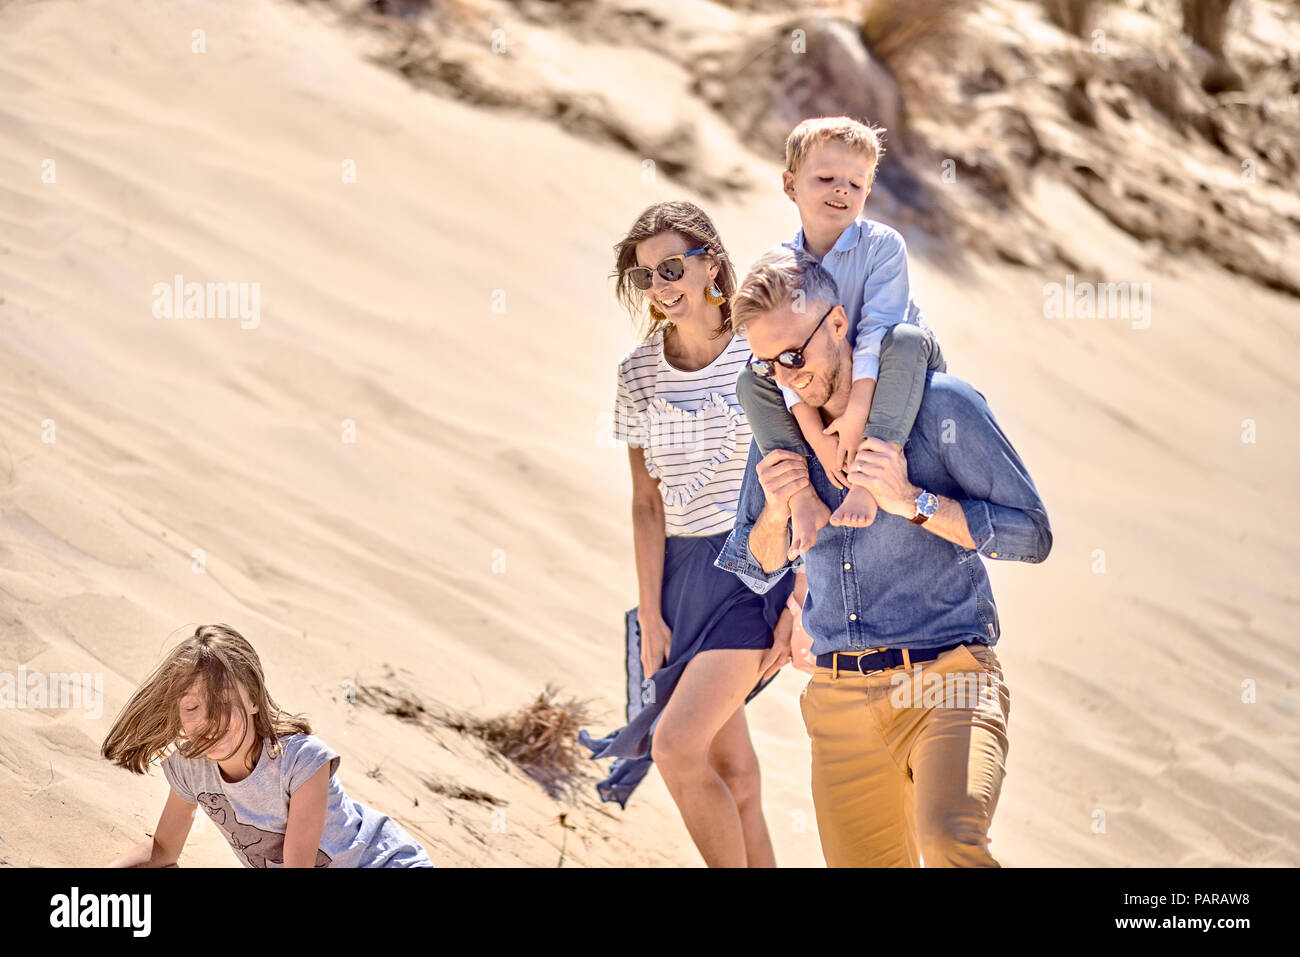 Happy family walking on the beach together - Stock Image